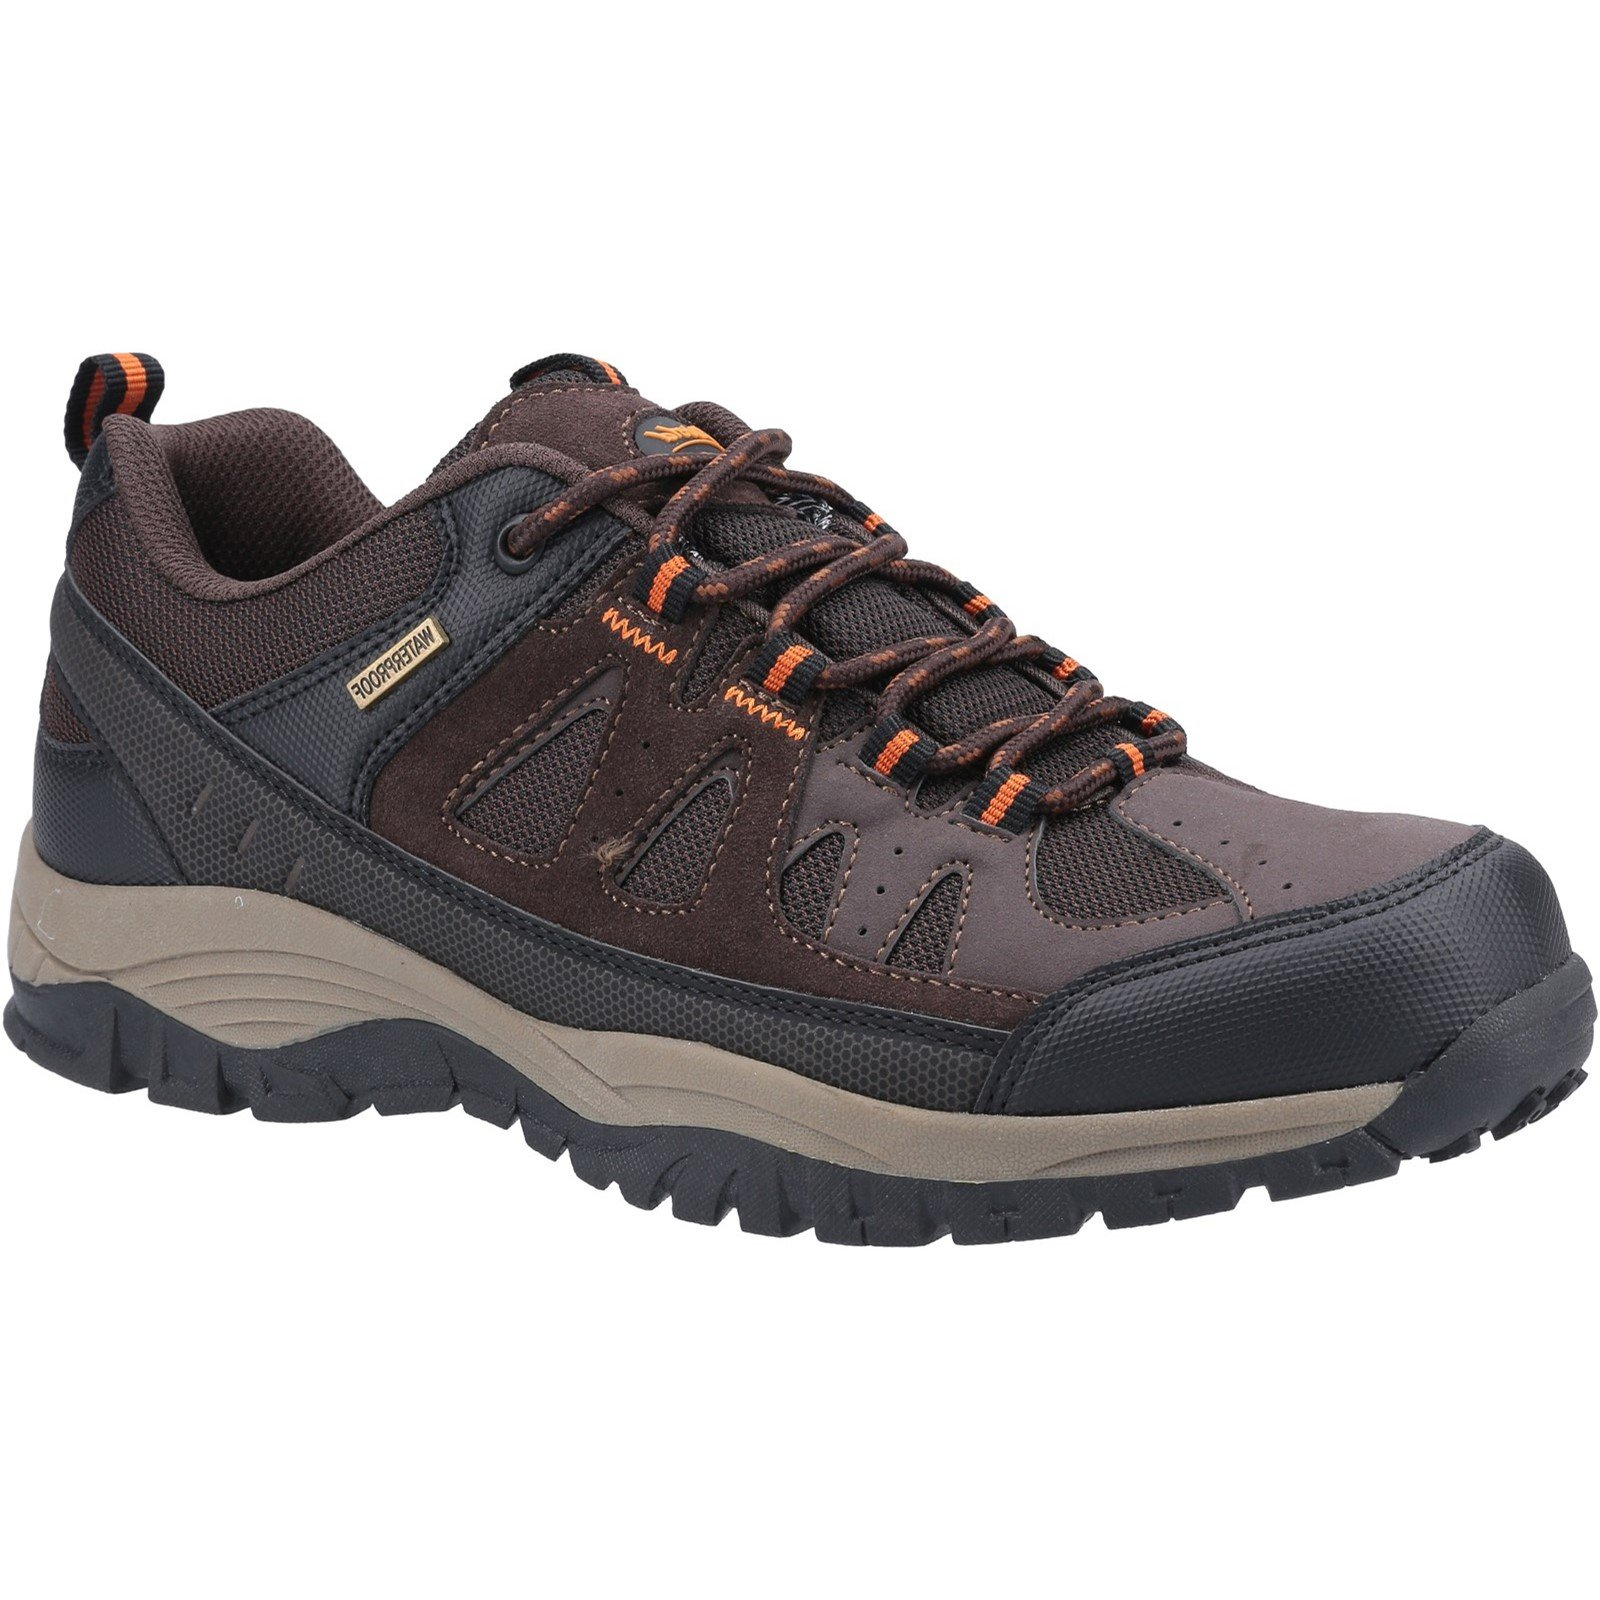 Cotswold Men's Maisemore Low Hiking Boot 32987 - Brown 10